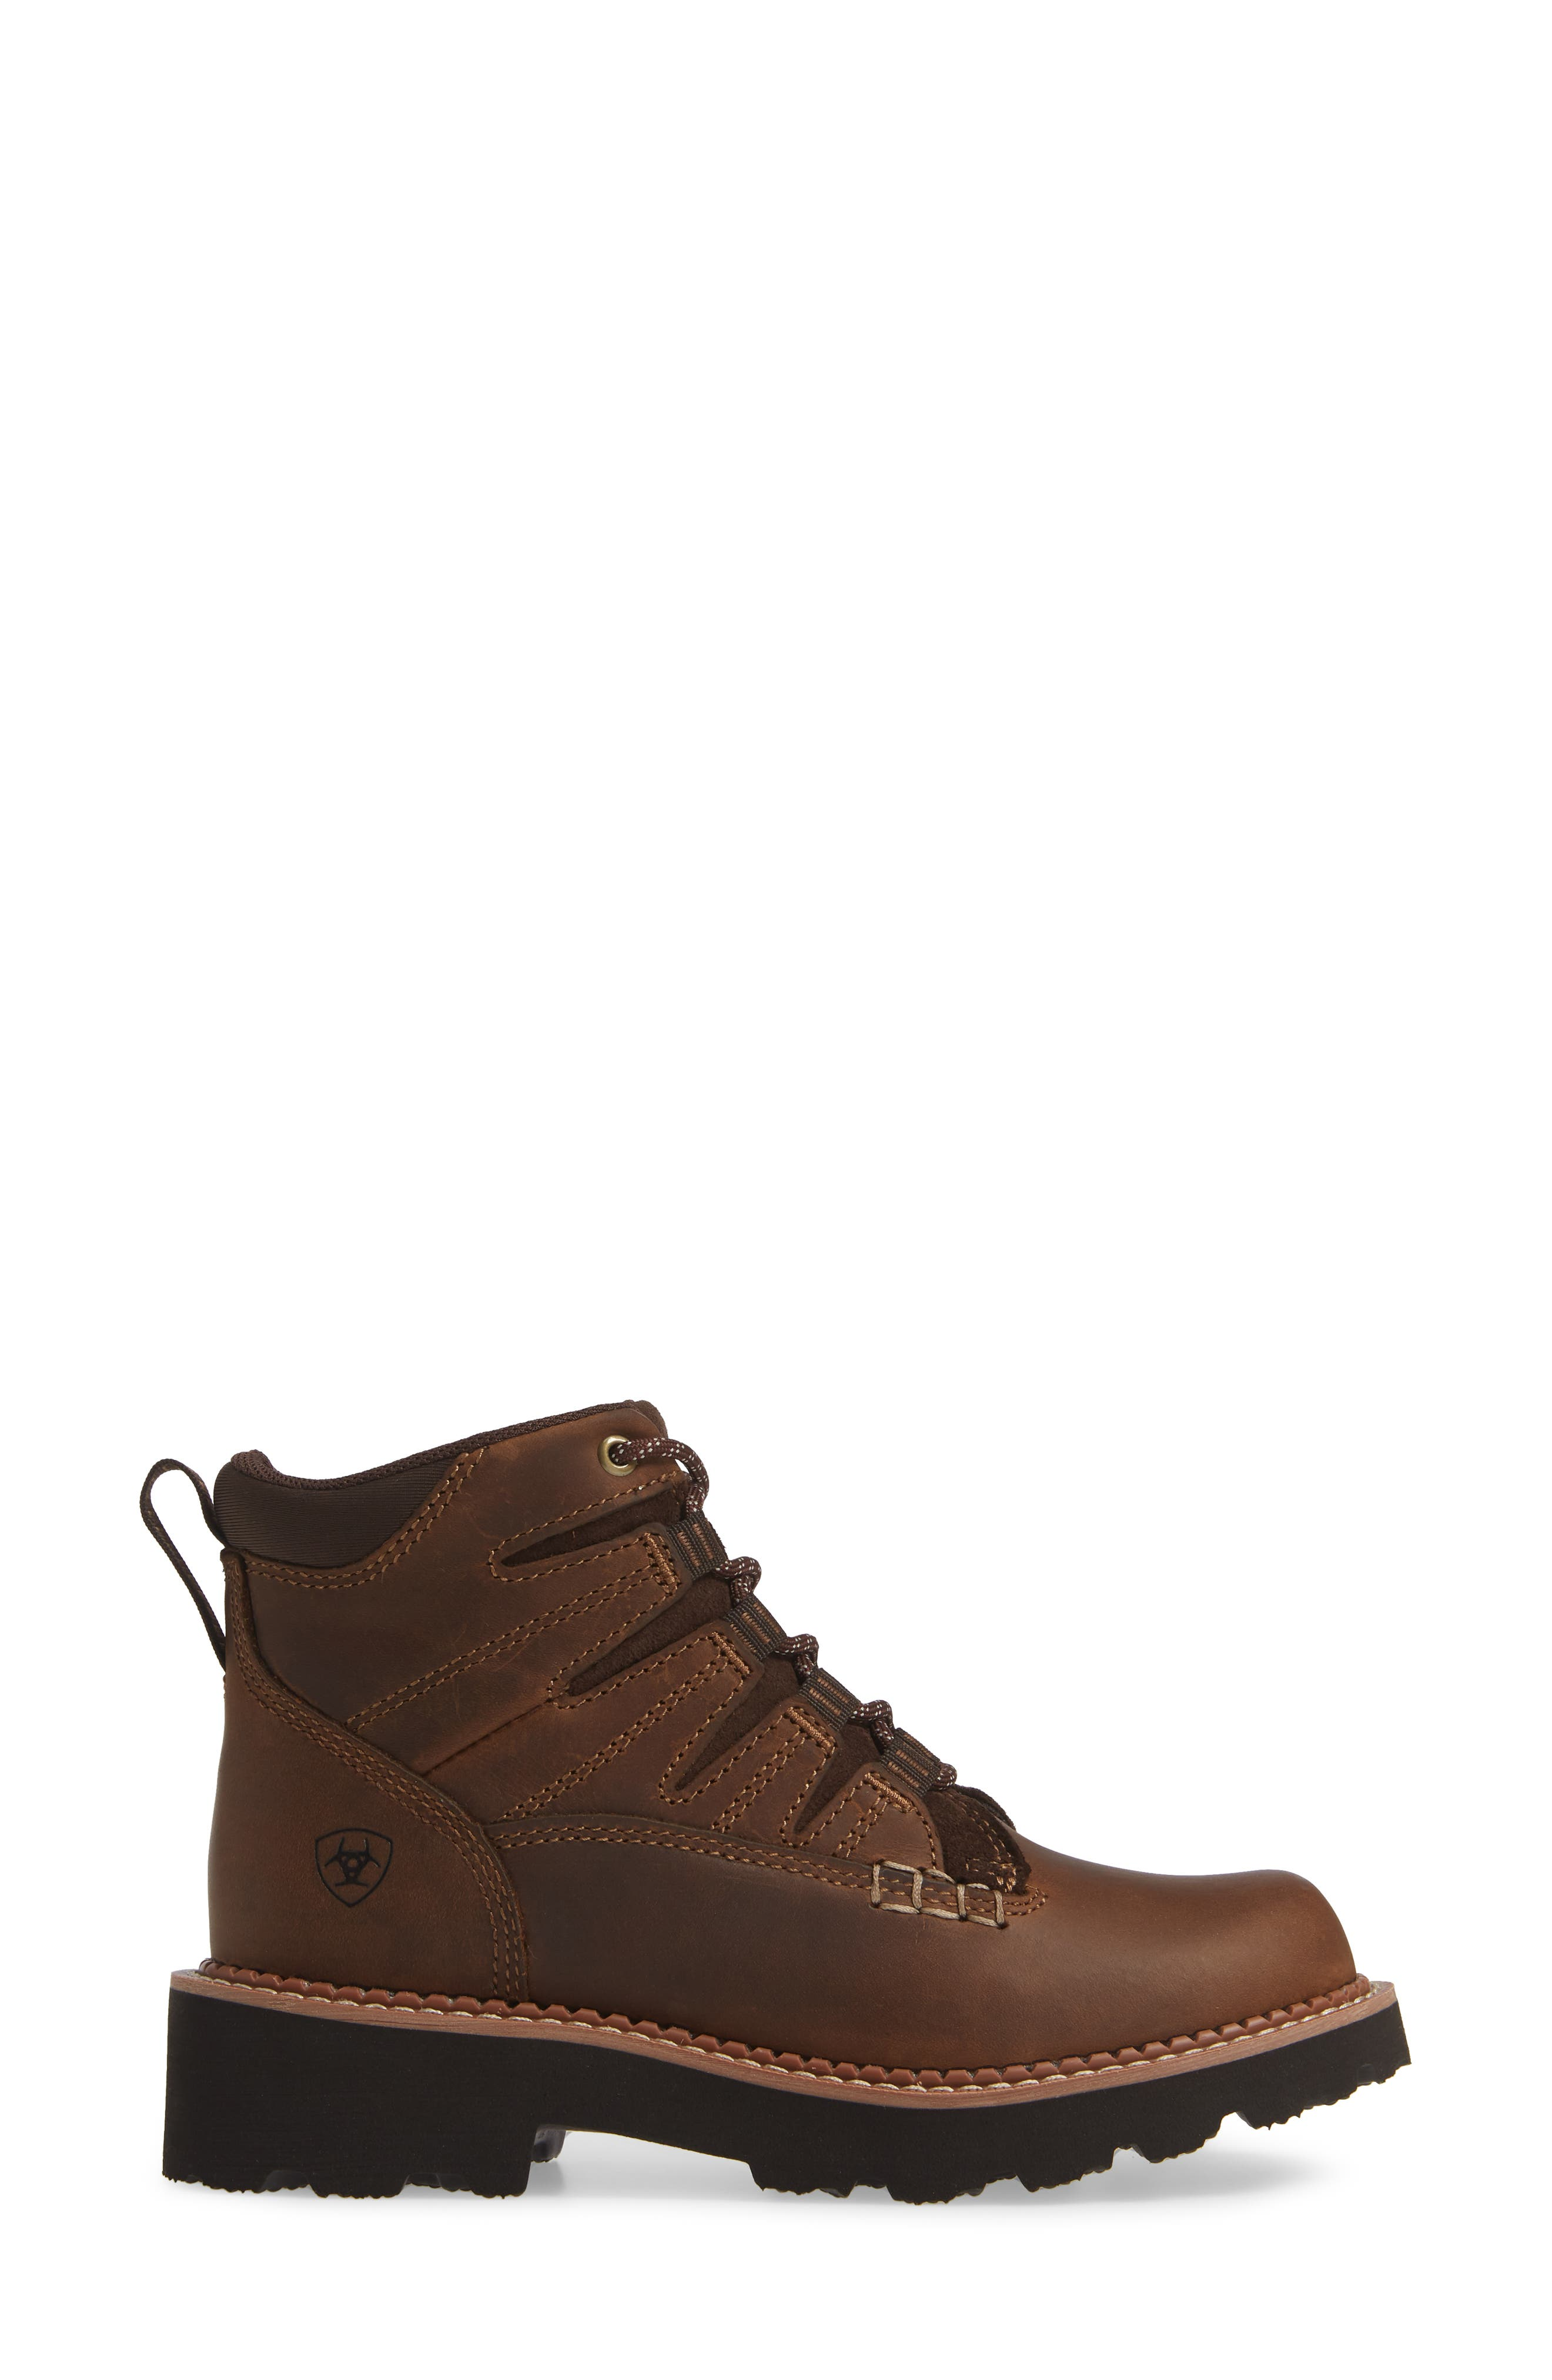 Canyon II Bootie,                             Alternate thumbnail 3, color,                             DISTRESSED BROWN LEATHER